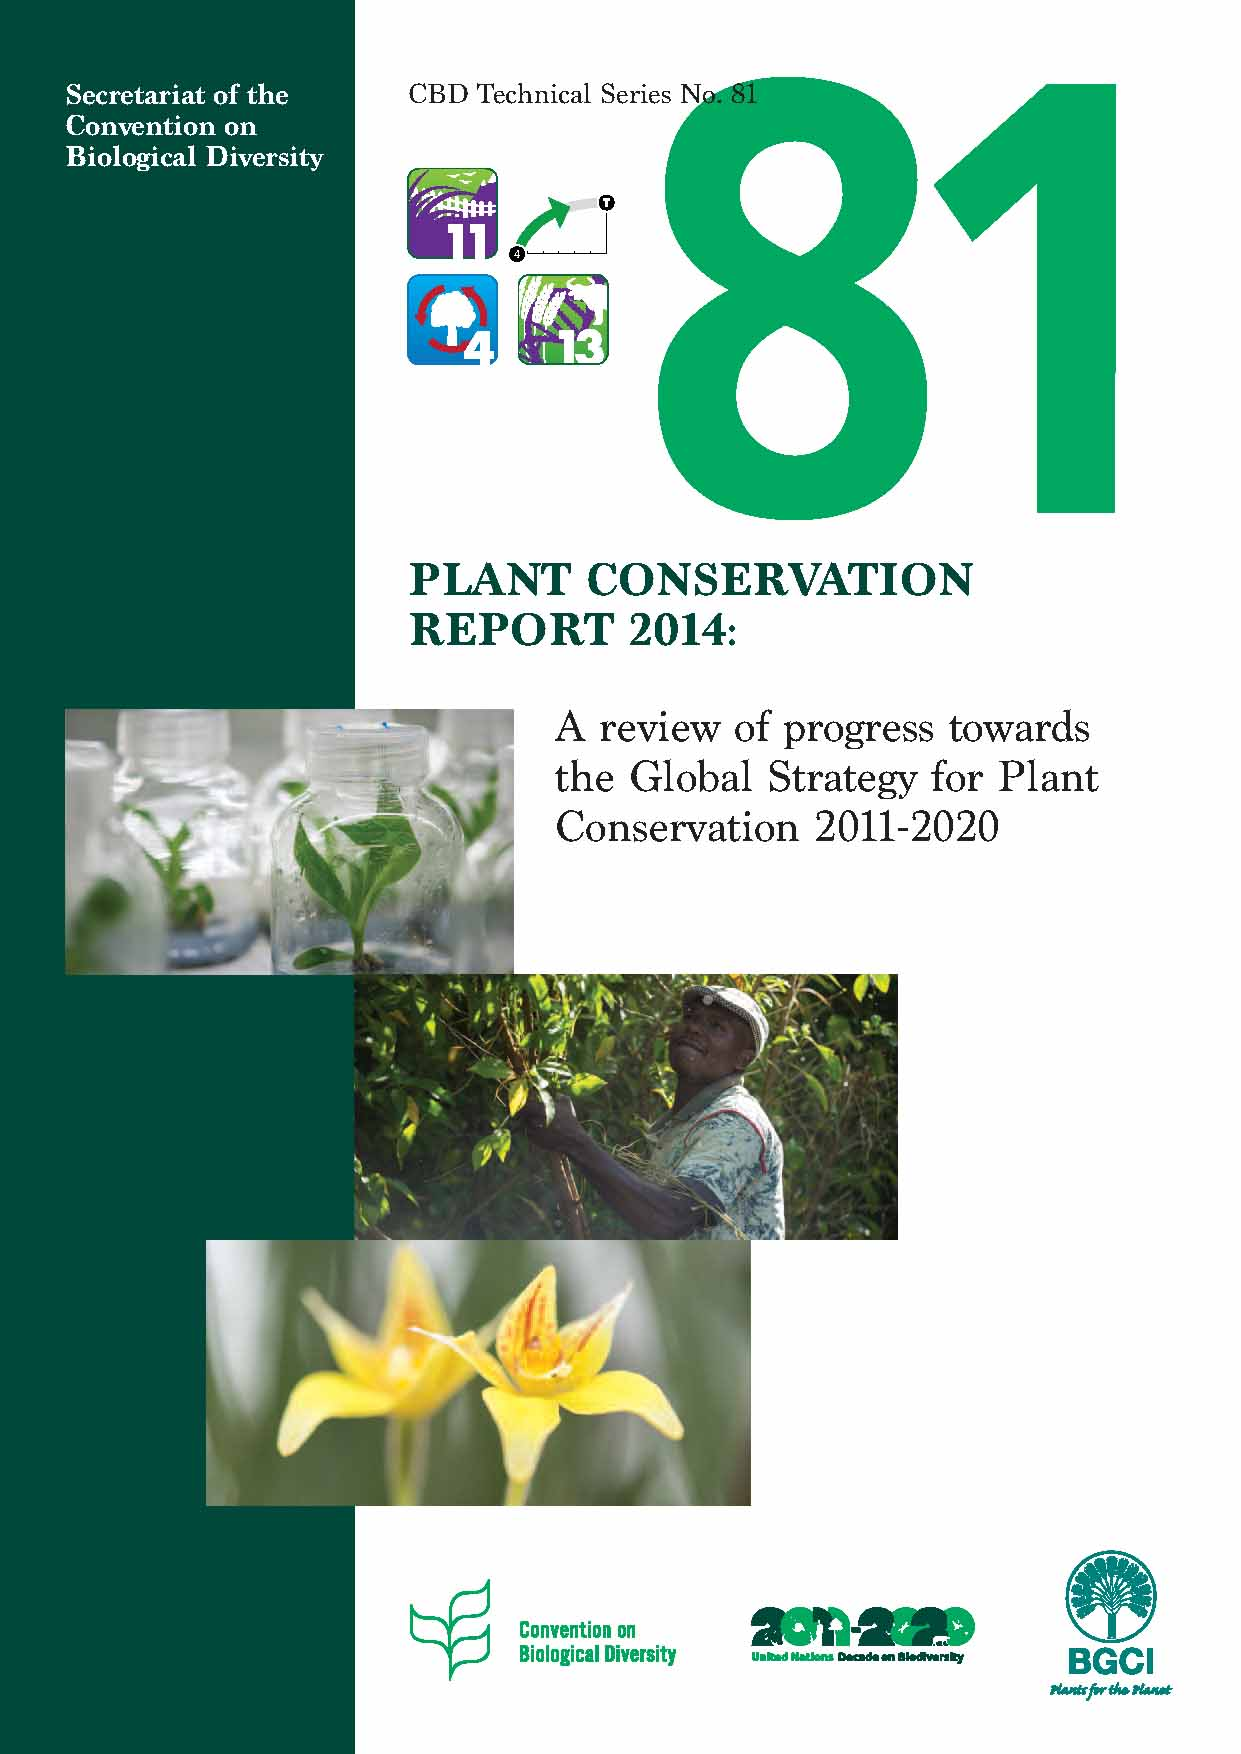 Capa da Plant Conservation Report 2014: A review of progress in implementation of the Global Strategy for Plant Conservation 2011-2020